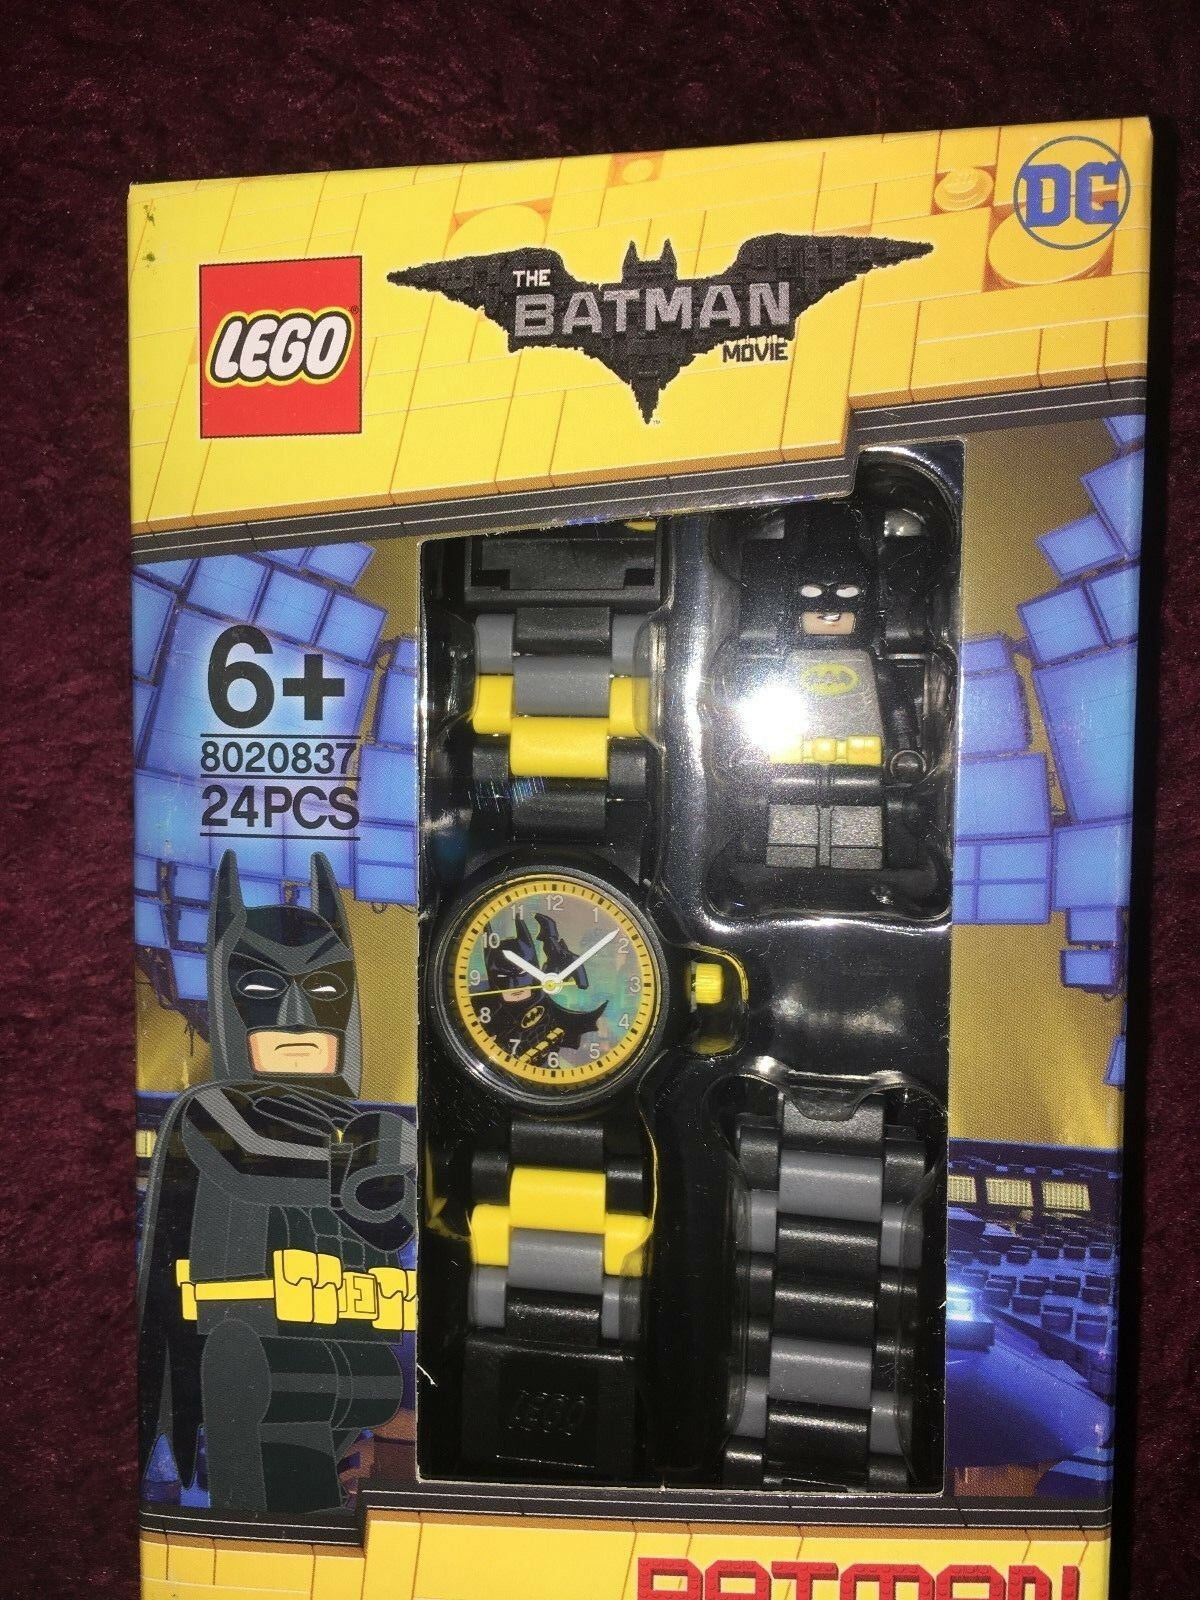 Batman lego movie batman analogue  watch with lego batman